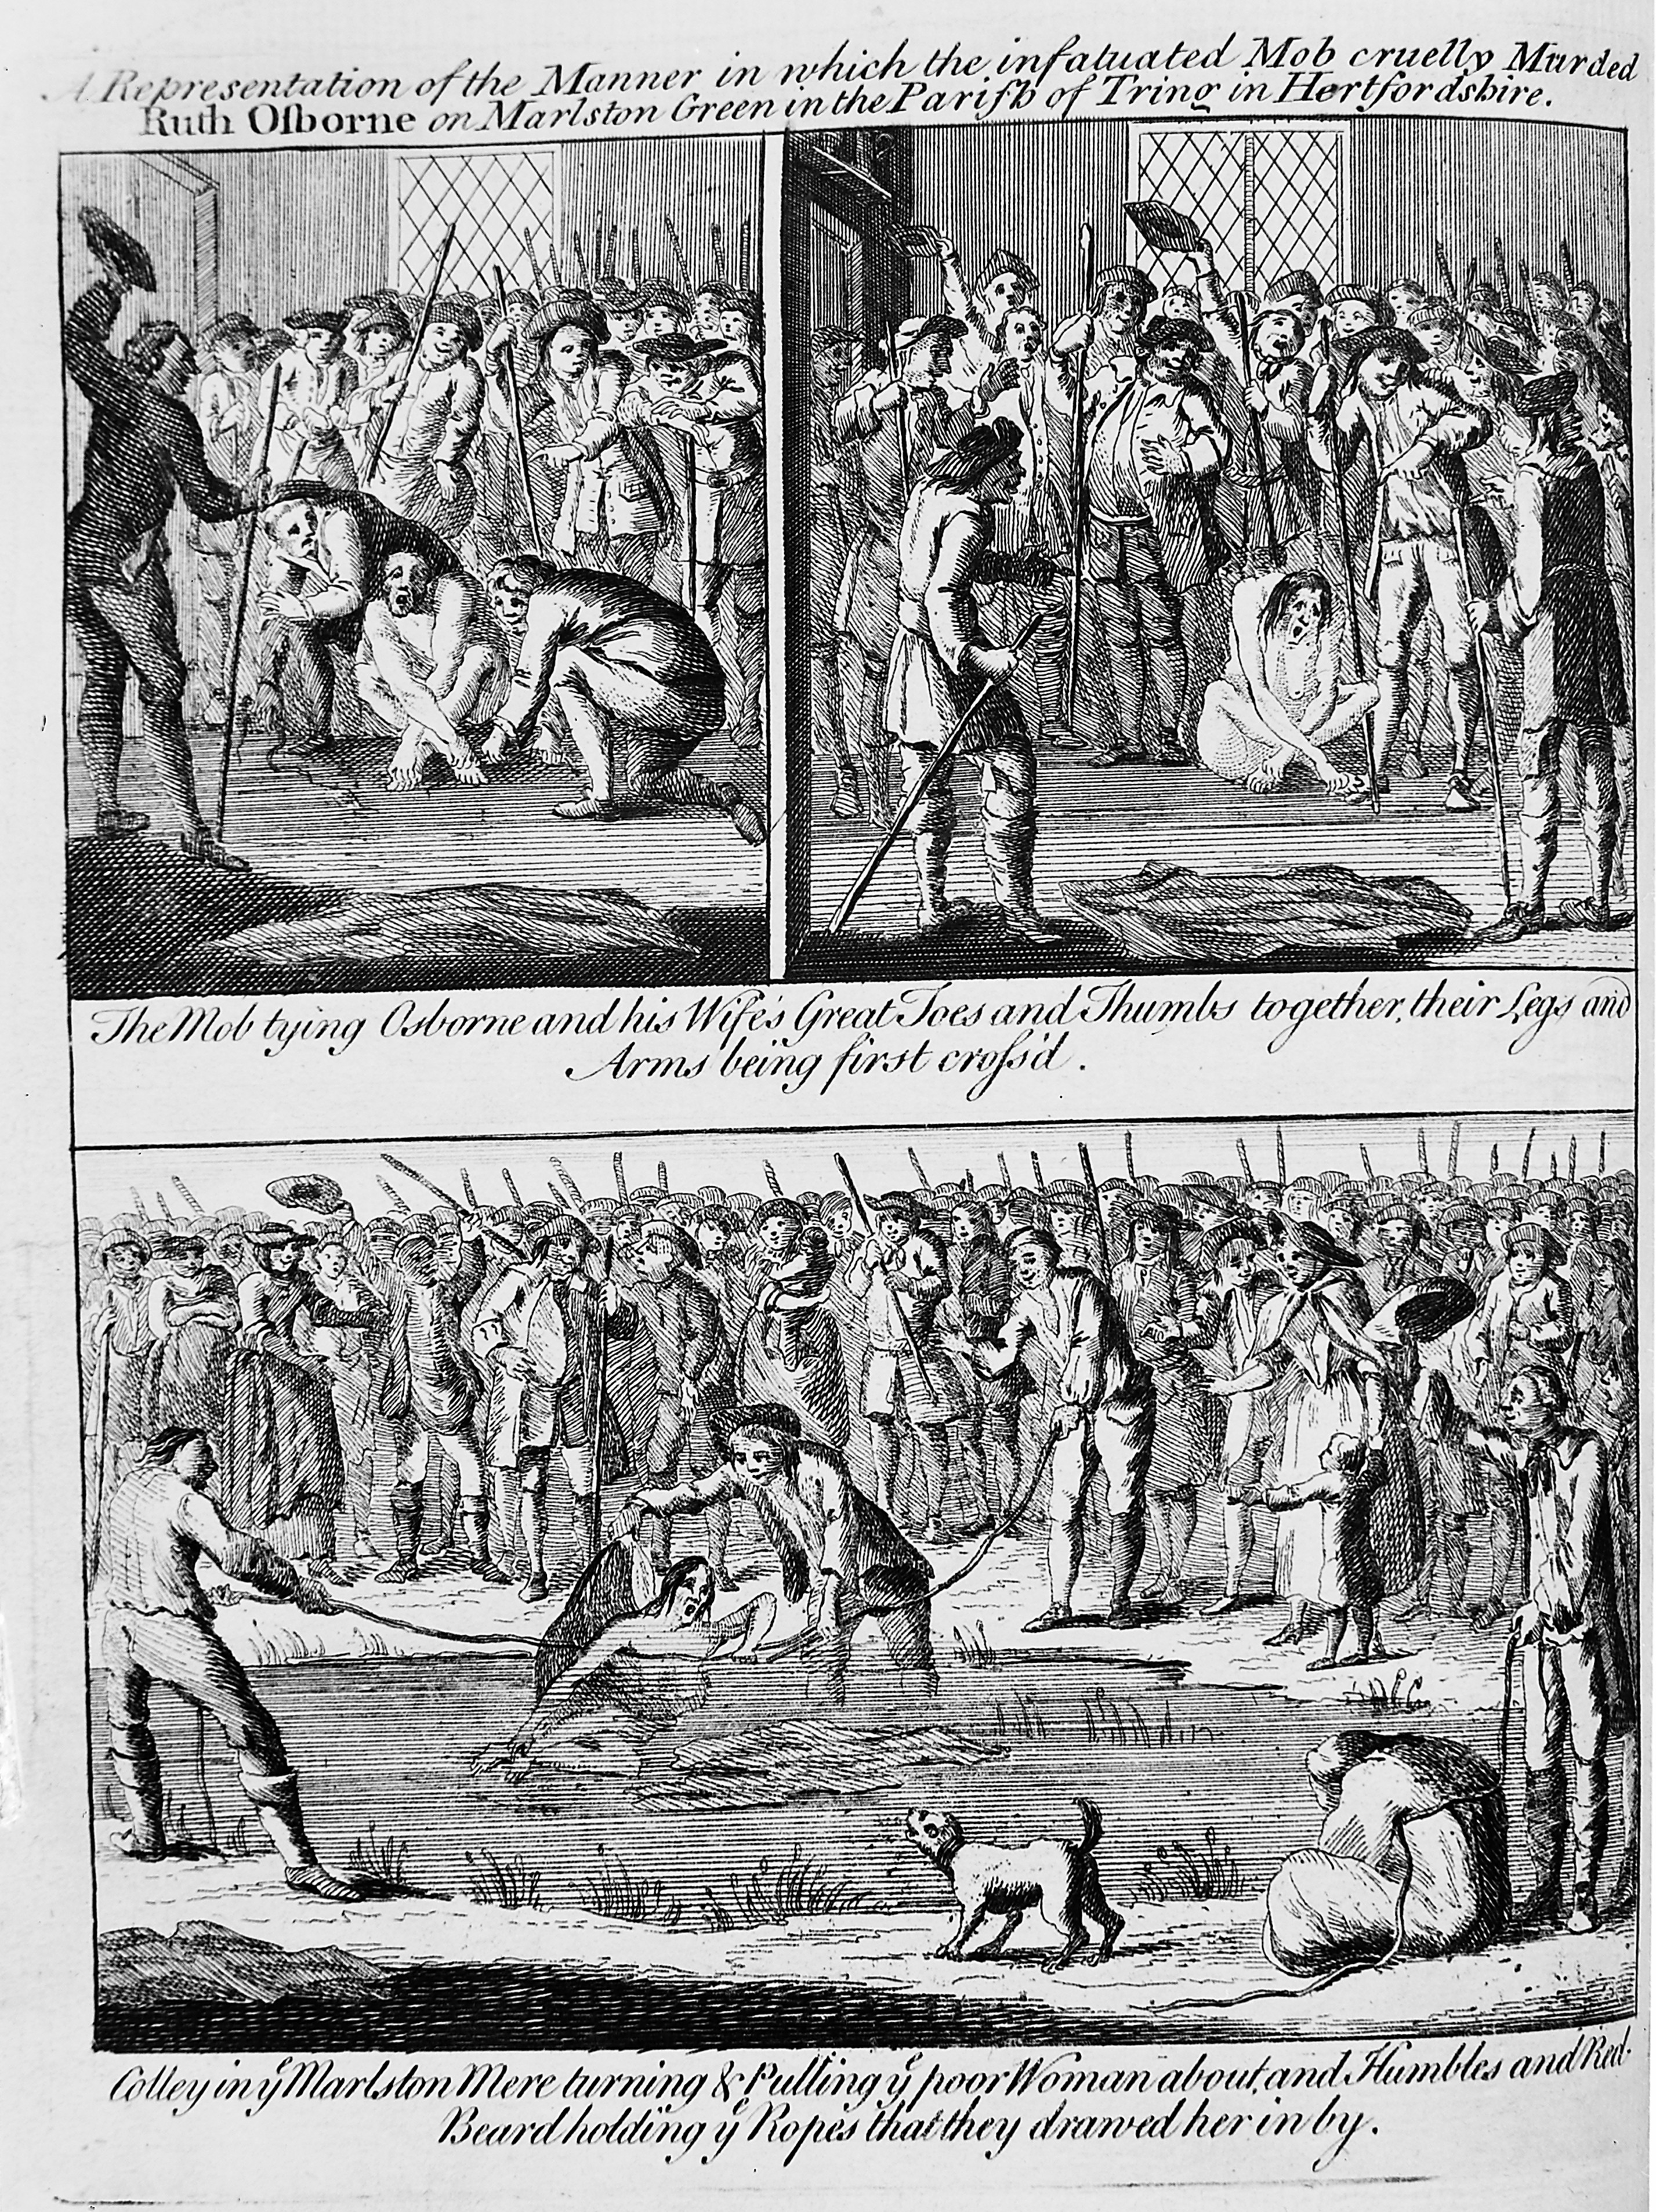 the status of sorcery and witchcraft in the modern period in england Beliefs were uncommon in english witch-trials the english prohibition of judicial torture,  magic and religion in early new england 205 (1992) 9 e william monter, witchcraft in france and swrrzerland 60 (1977) in  (charting numbers of prosecutions for home circuit during entire period of witch-hunting.